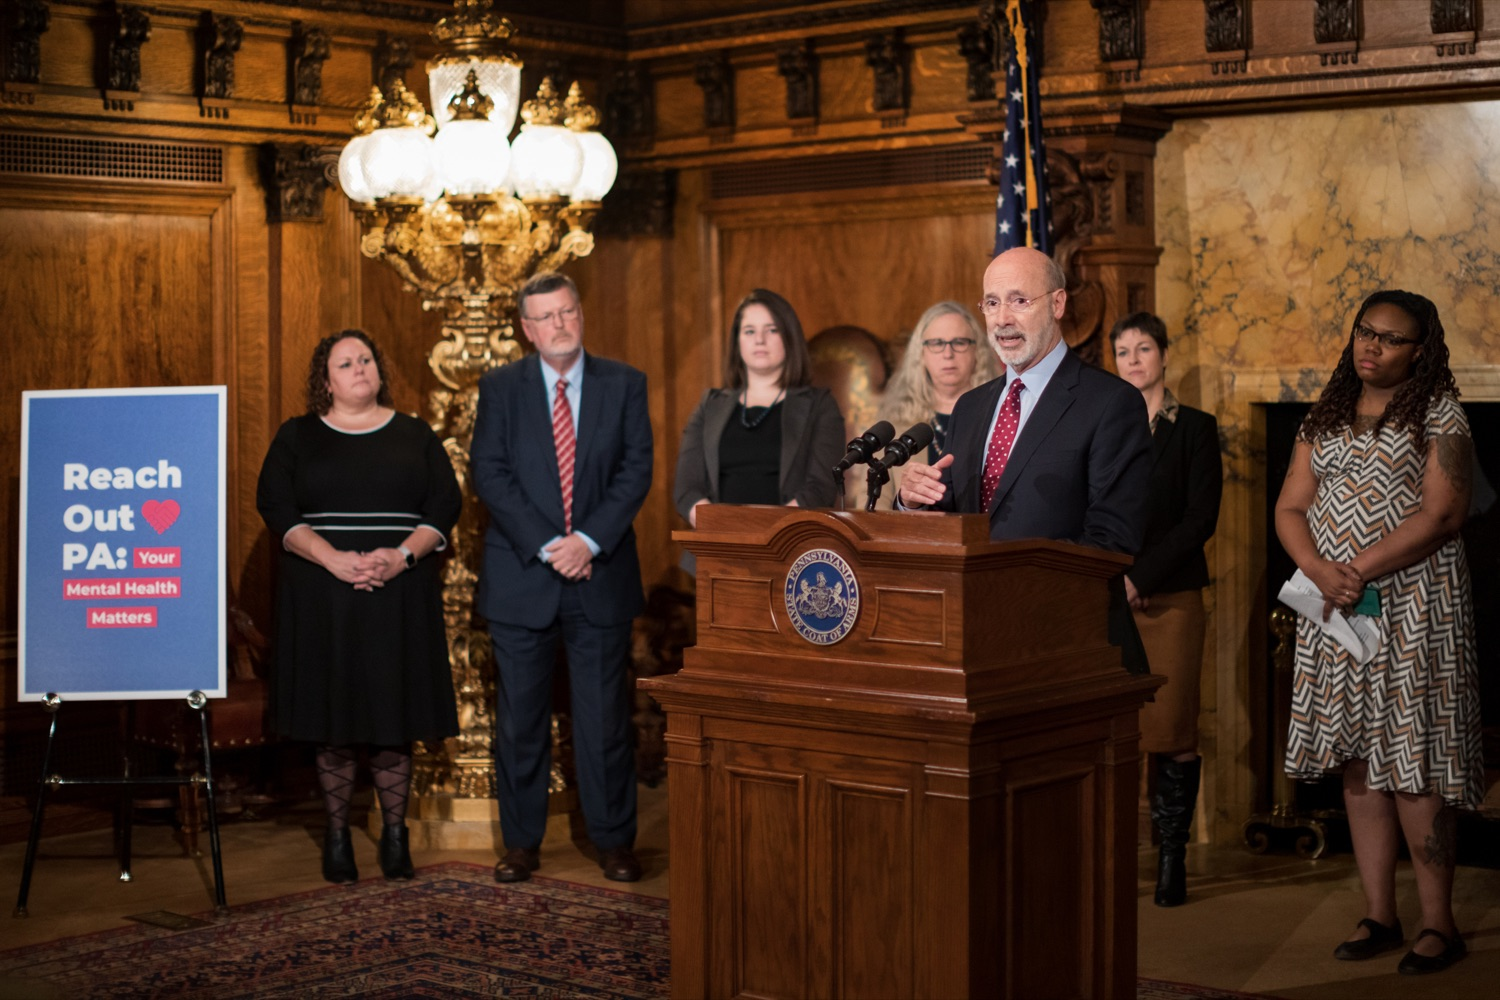 "<a href=""https://filesource.wostreaming.net/commonwealthofpa/photo/17694_GOV_Mental_Health_NK_005.JPG"" target=""_blank"">⇣ Download Photo<br></a>Pennsylvania Governor Tom Wolf speaks during a press conference inside the Governor's Reception Room at the State Capitol building in Harrisburg on Thursday, January 2, 2020. Governor Wolf announced a focused all-agency effort and anti-stigma campaign, Reach Out PA: Your Mental Health Matters, aimed at expanding resources and the states comprehensive support of mental health and related health care priorities in Pennsylvania."